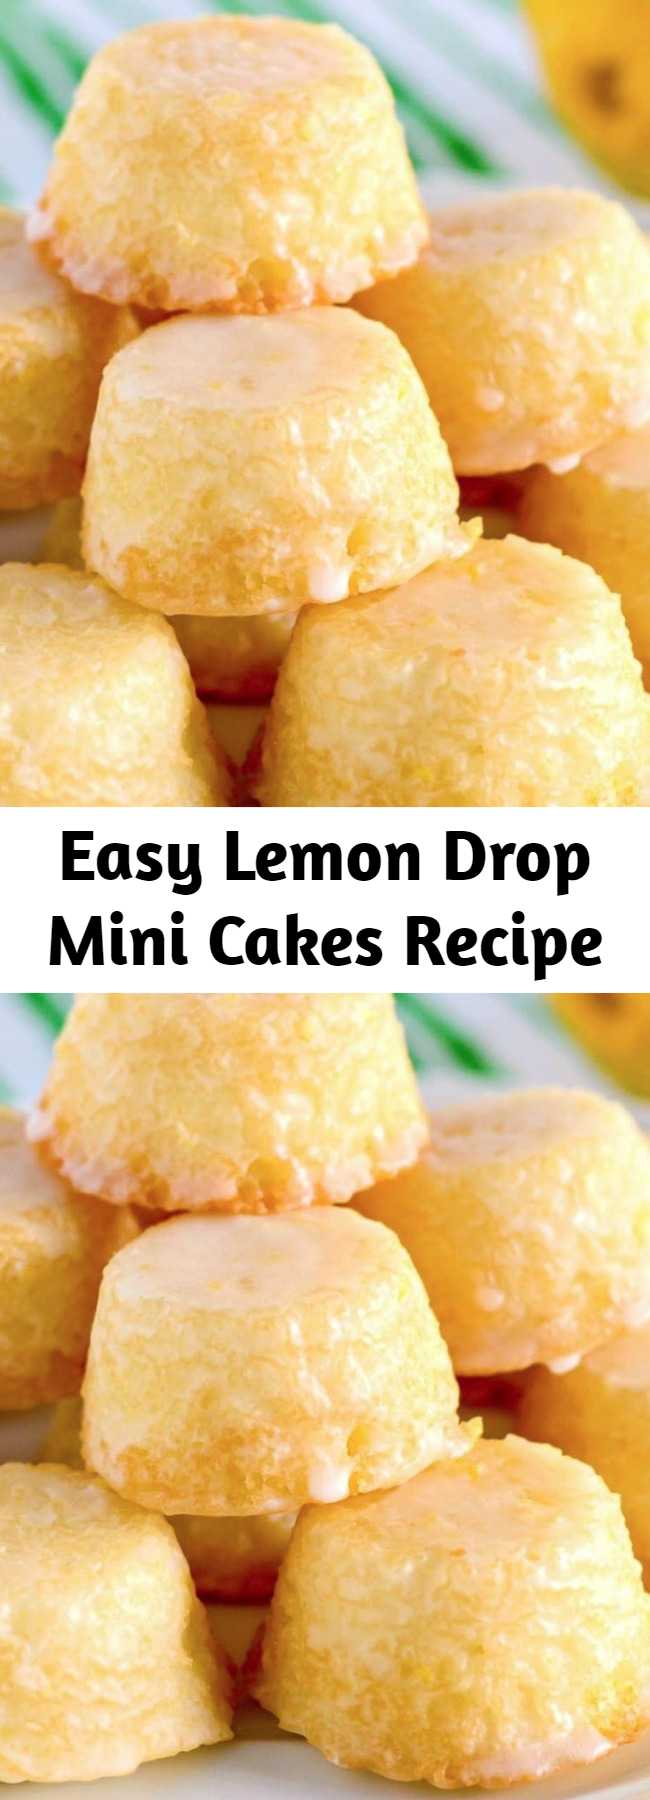 Easy Lemon Drop Mini Cakes Recipe - These mini Lemon Drops are a perfect treat for lemon fans. Tiny lemon cakes are drenched in a mouthwatering lemon glaze making them delicious and addicting.